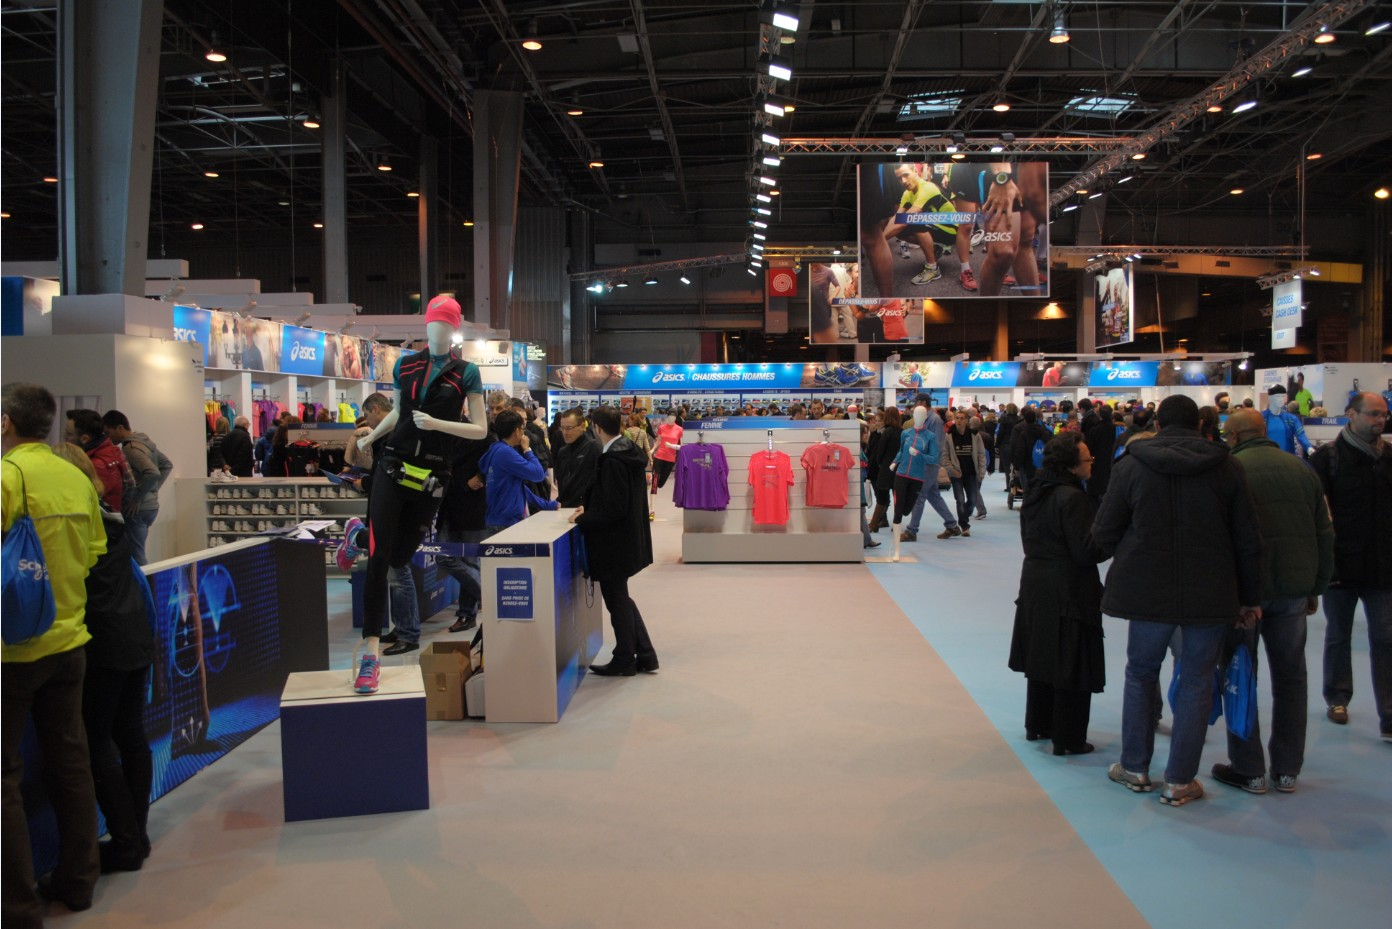 Asics au salon running expo 2013 vega stiac for Salon exposition